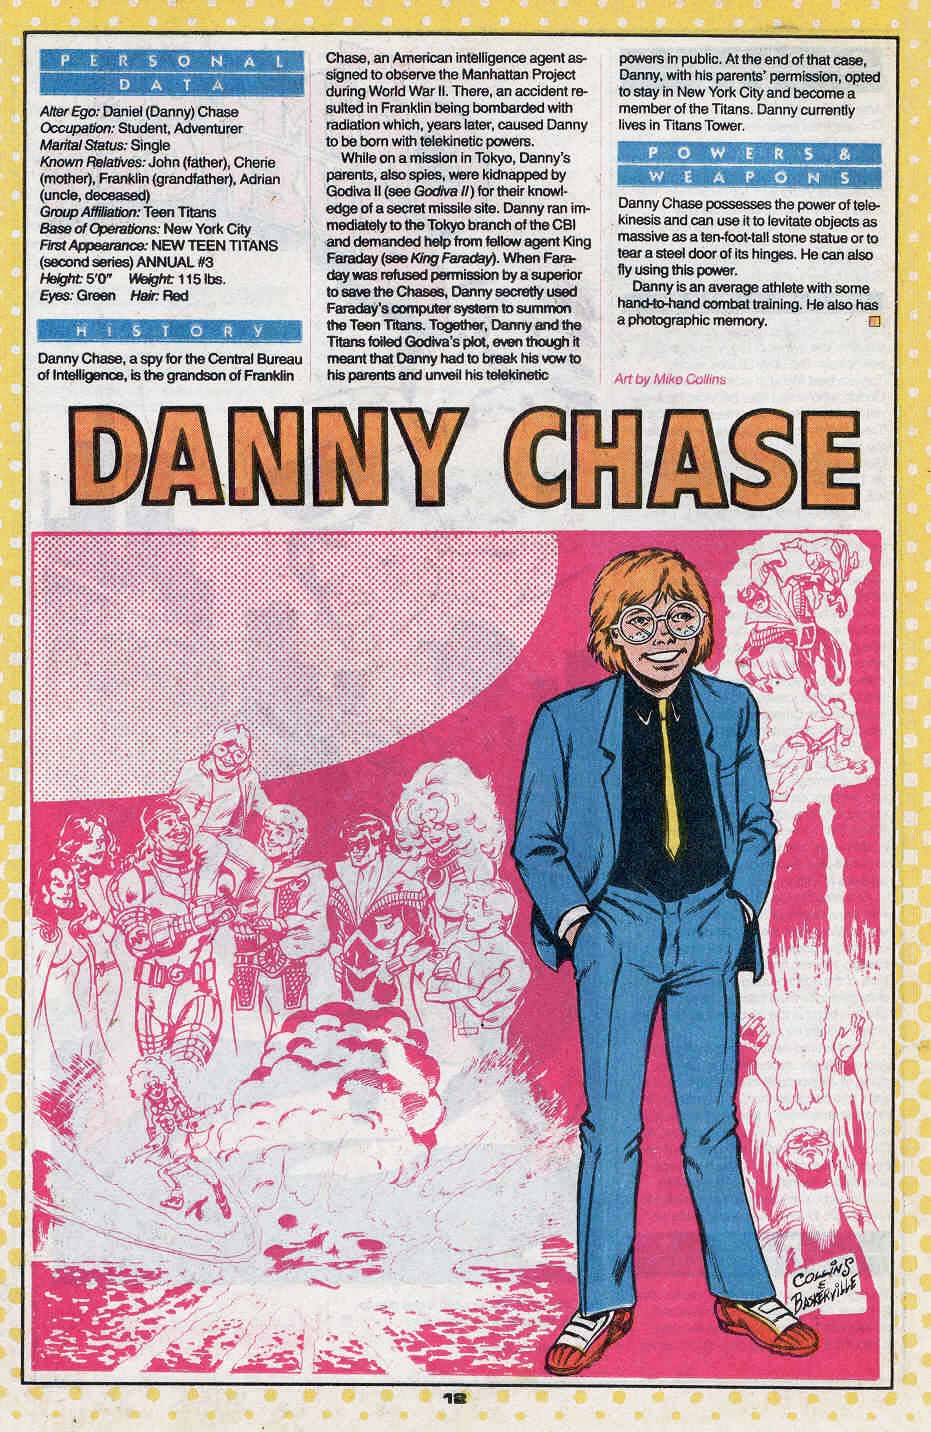 Danny Chase by Mike Collins